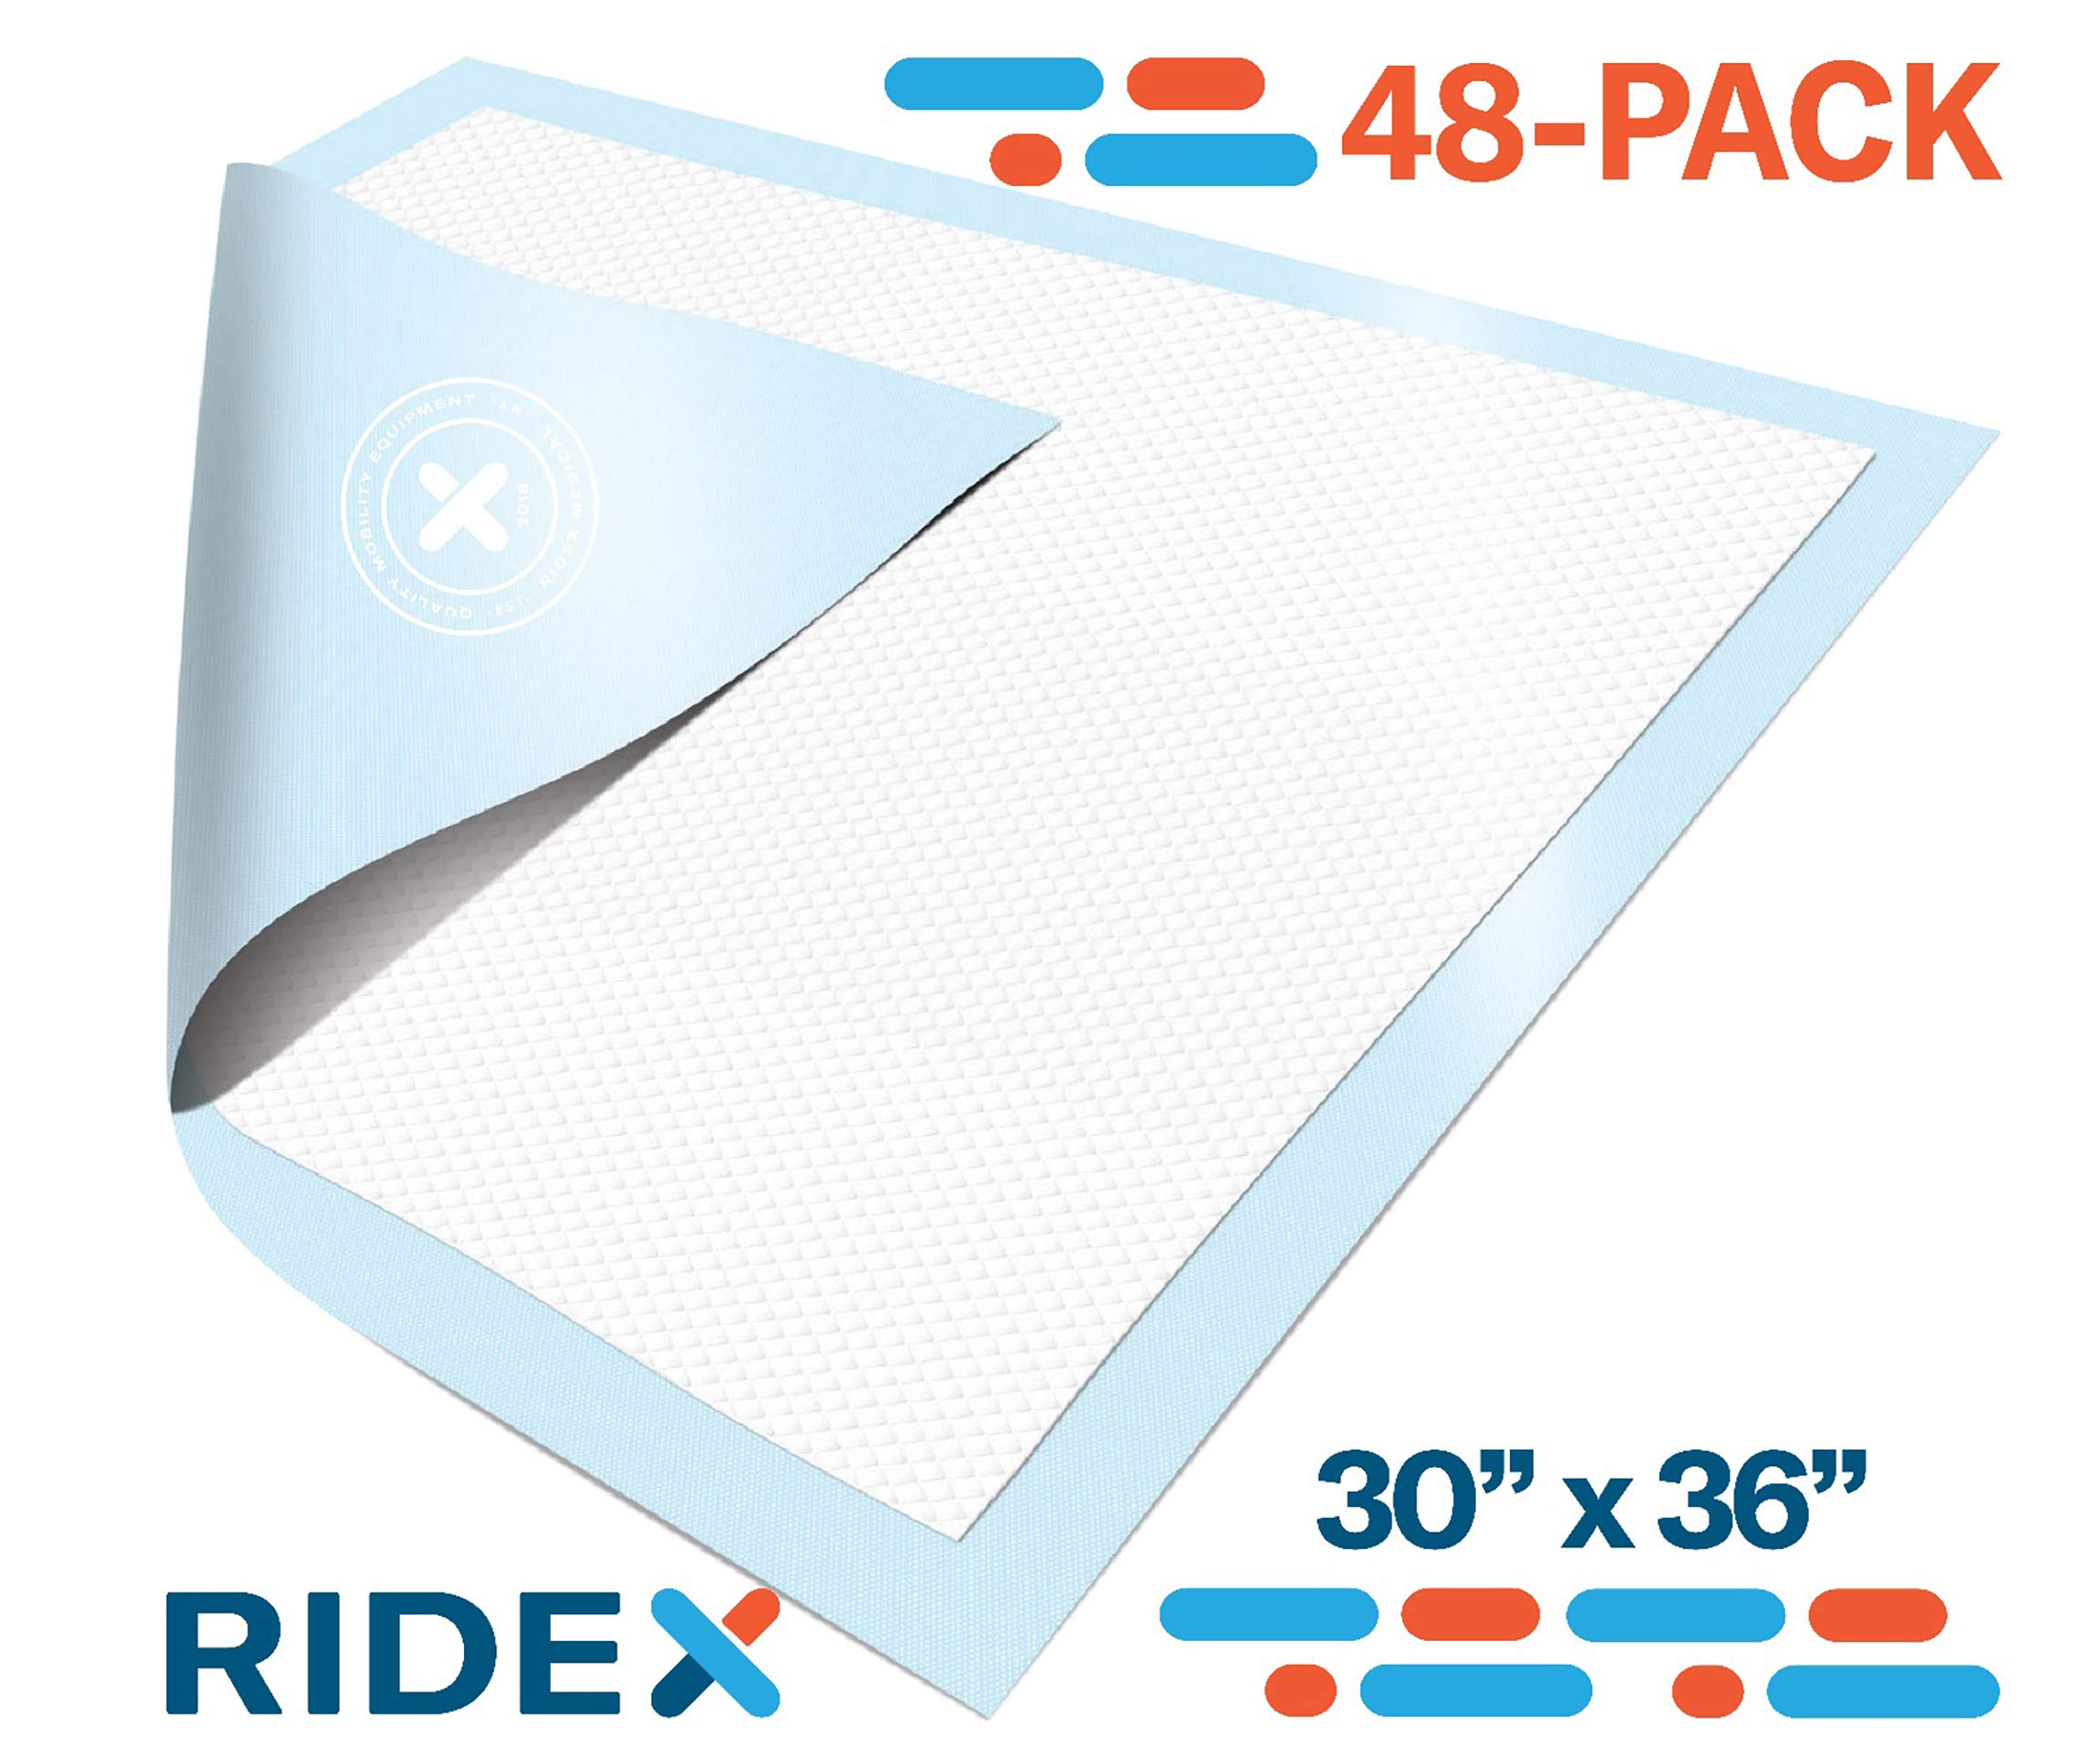 Incontinence Bed Pads [48 Pack] Underpads 30 x 36 Disposable Ultra-Heavyweight Super Absorbent & Waterproof, Patient Repositioning [375 lbs.] Maximum Strength Breathable Backsheet for Skin Protection